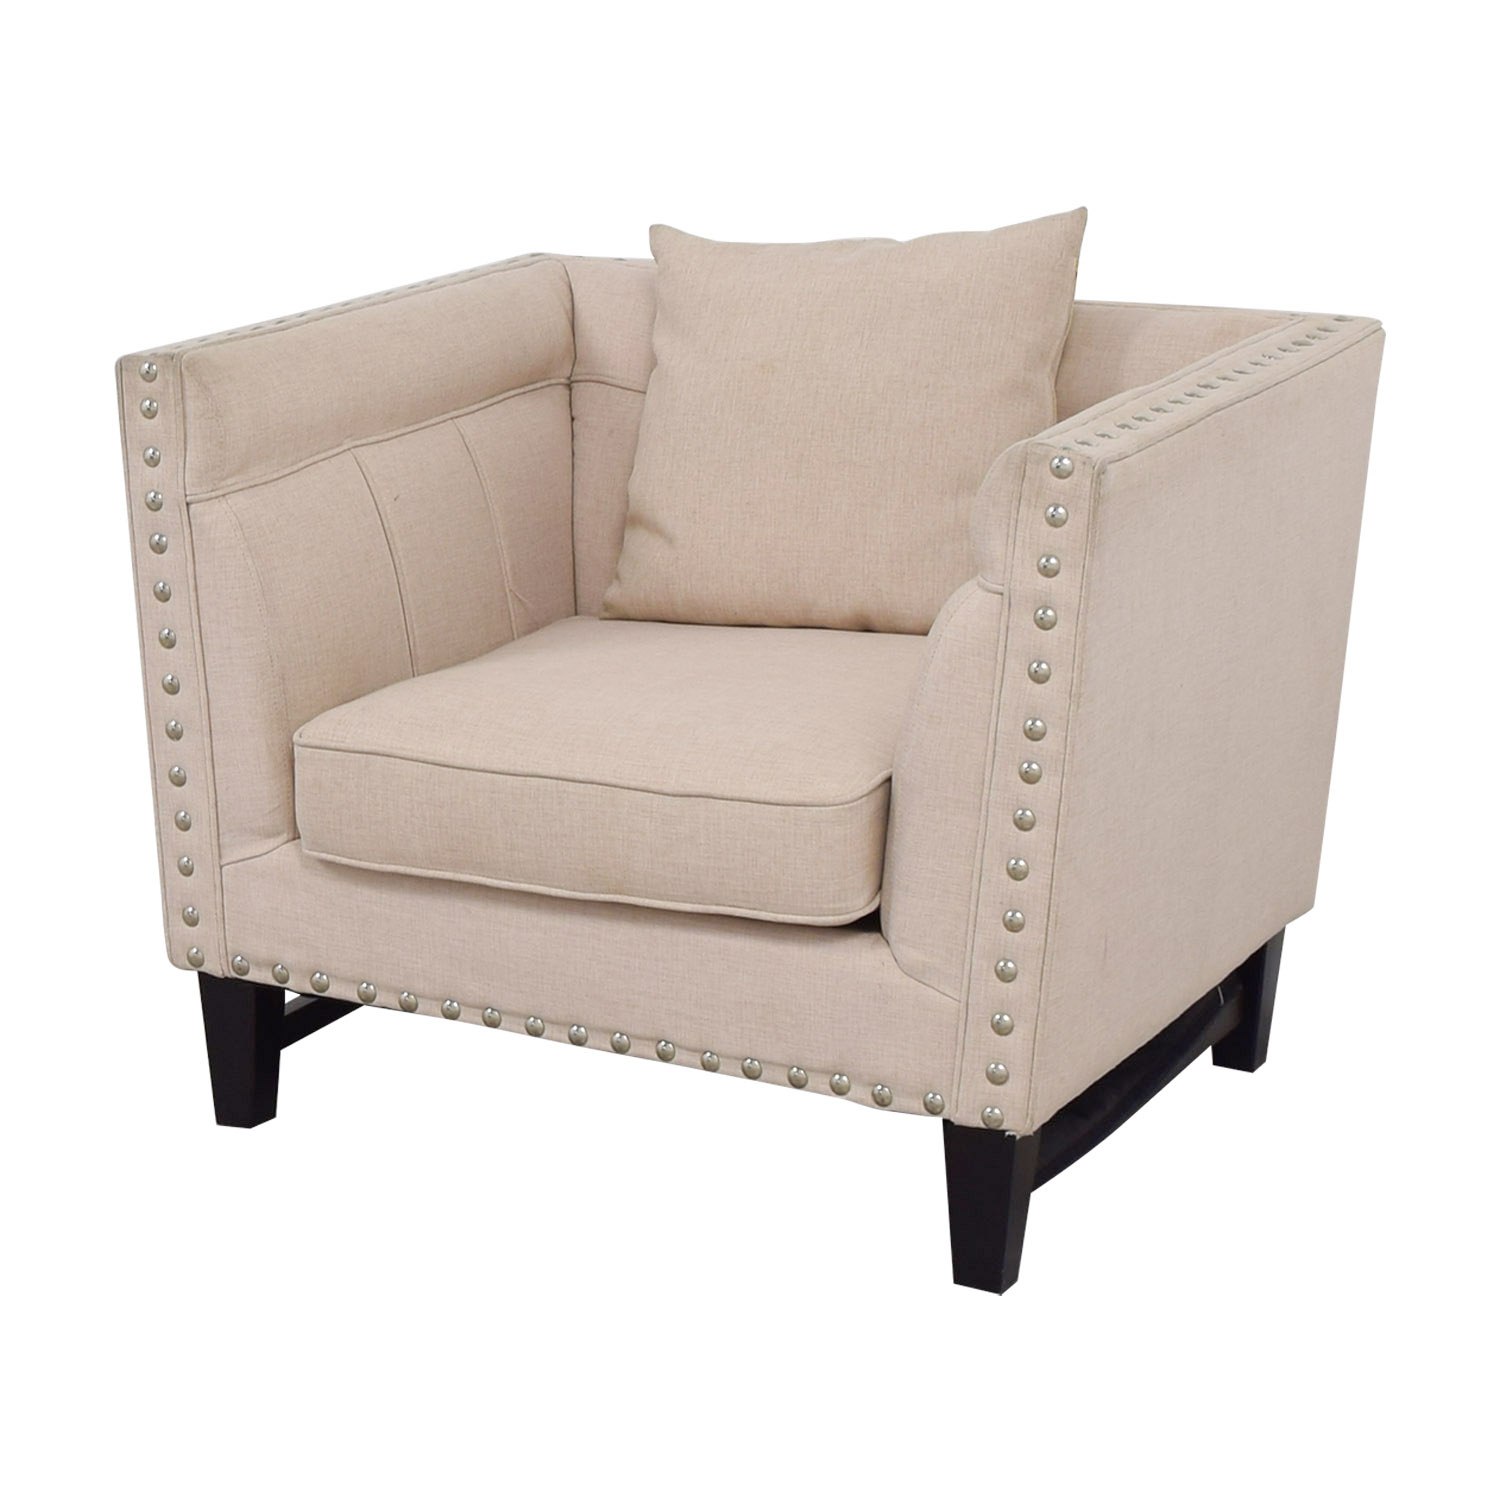 ... House Of Hampton House Of Hampton Beige Nailhead Square Upholstered  Armchair For Sale ...